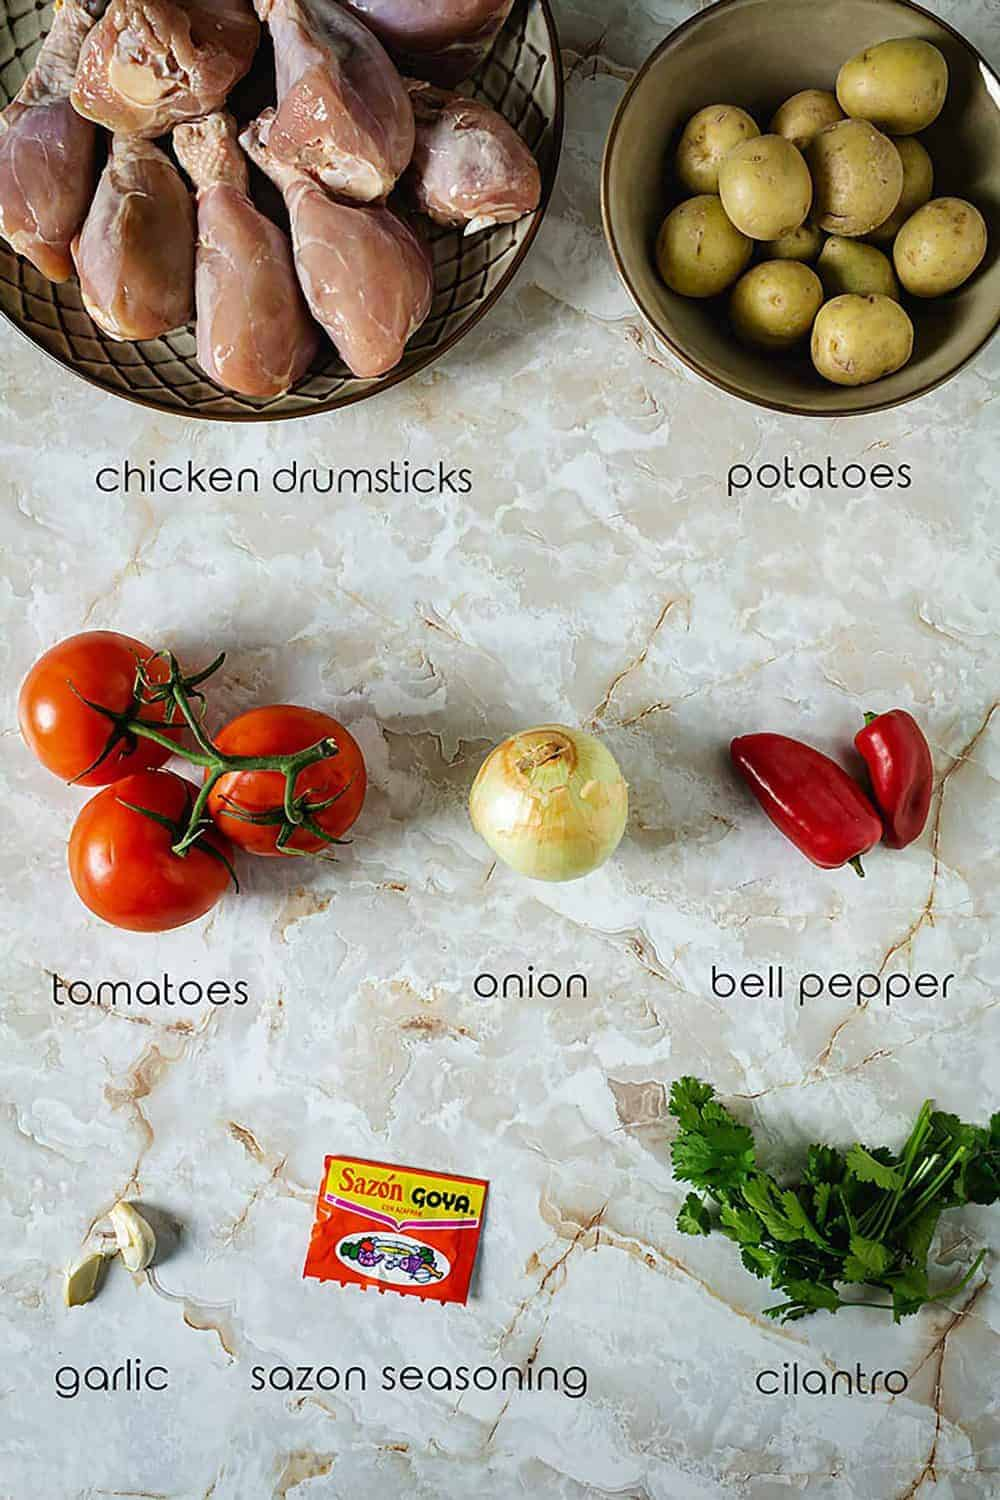 Ingredients for Sudado de Pollo with chicken drumsticks, potatoes, tomatoes, and seasonings.